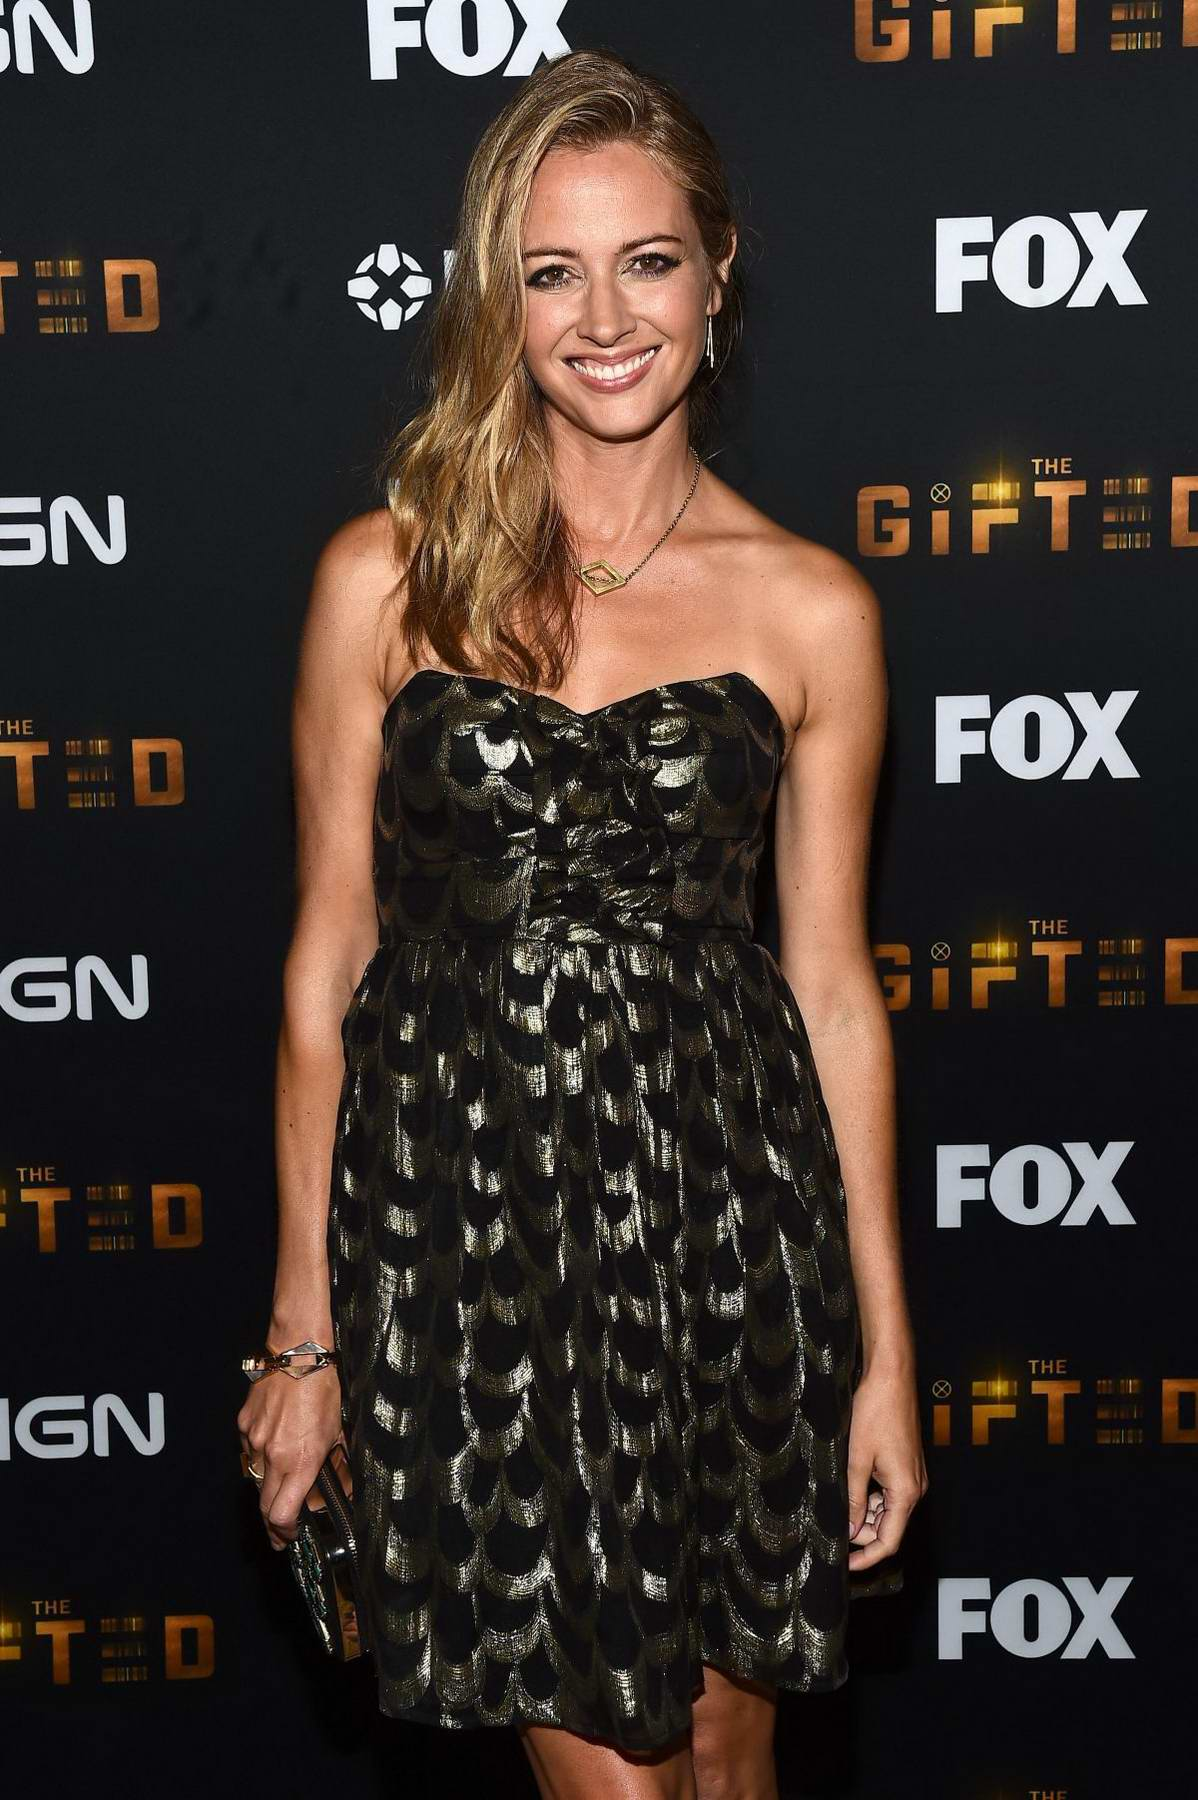 Amy Acker at The Gifted party at Comic Con International 2017 in San Diego